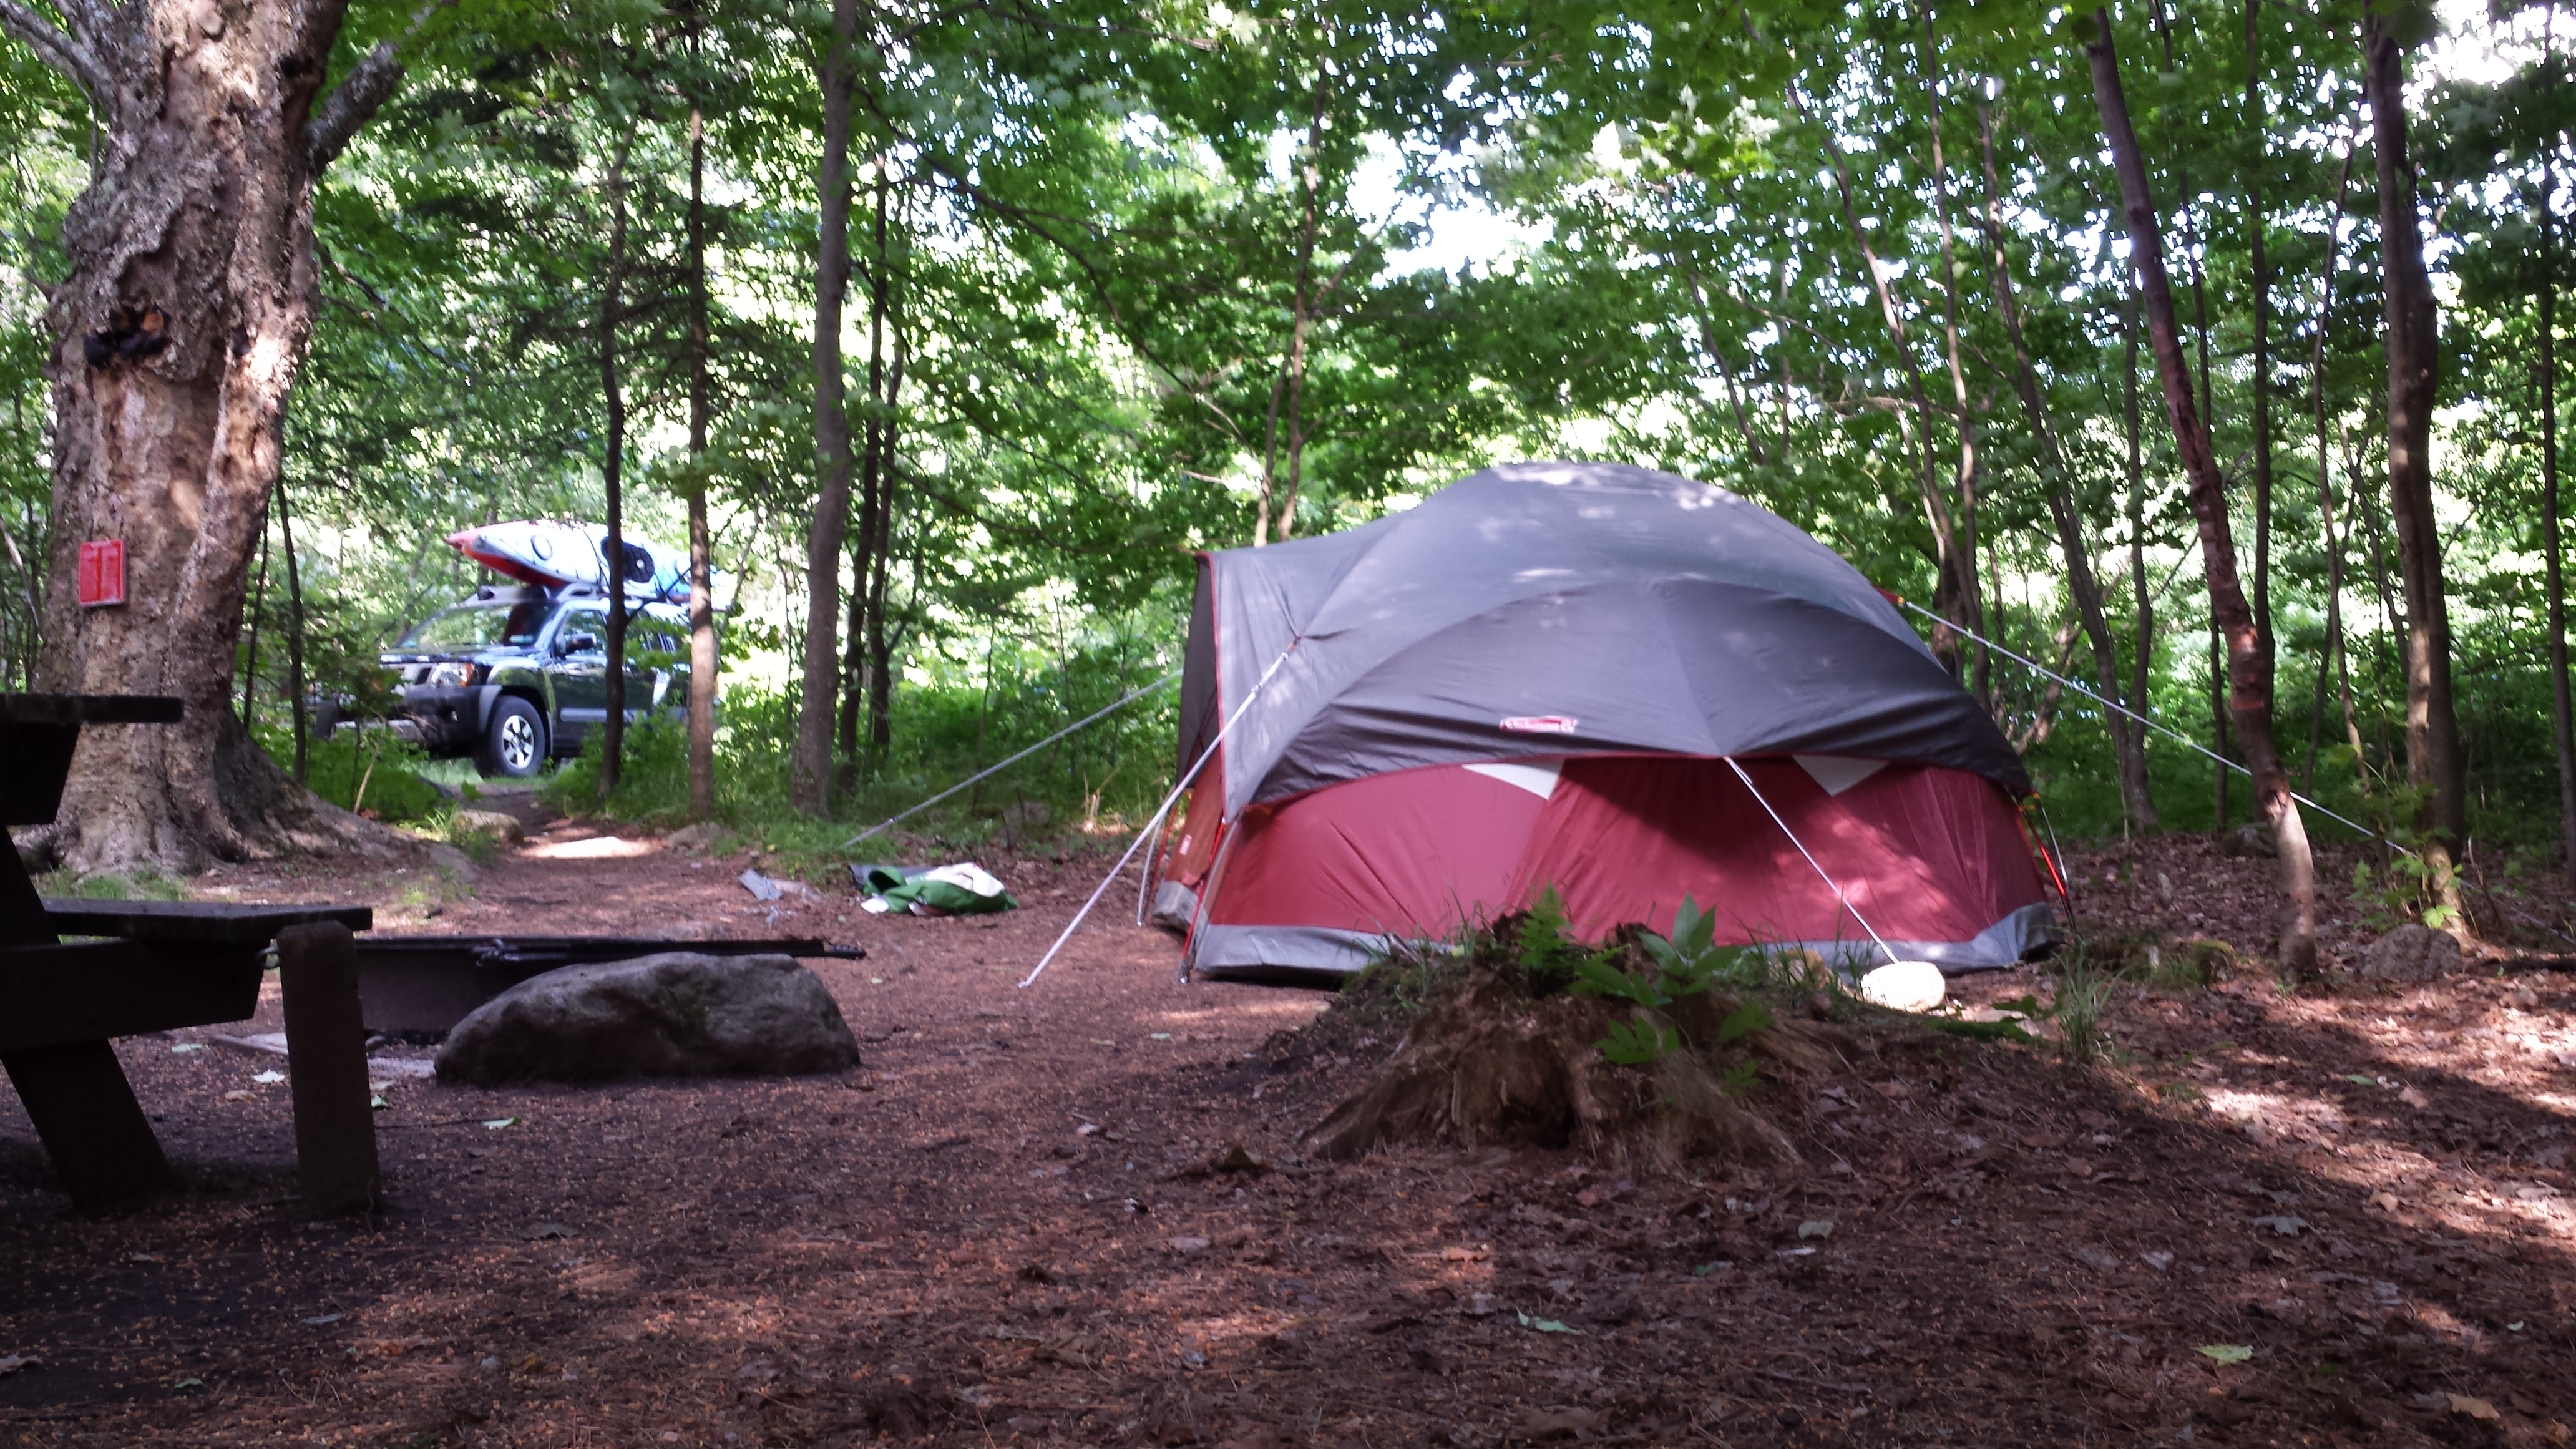 A tent campsite at ADK's Wilderness Campground at Heart Lake.